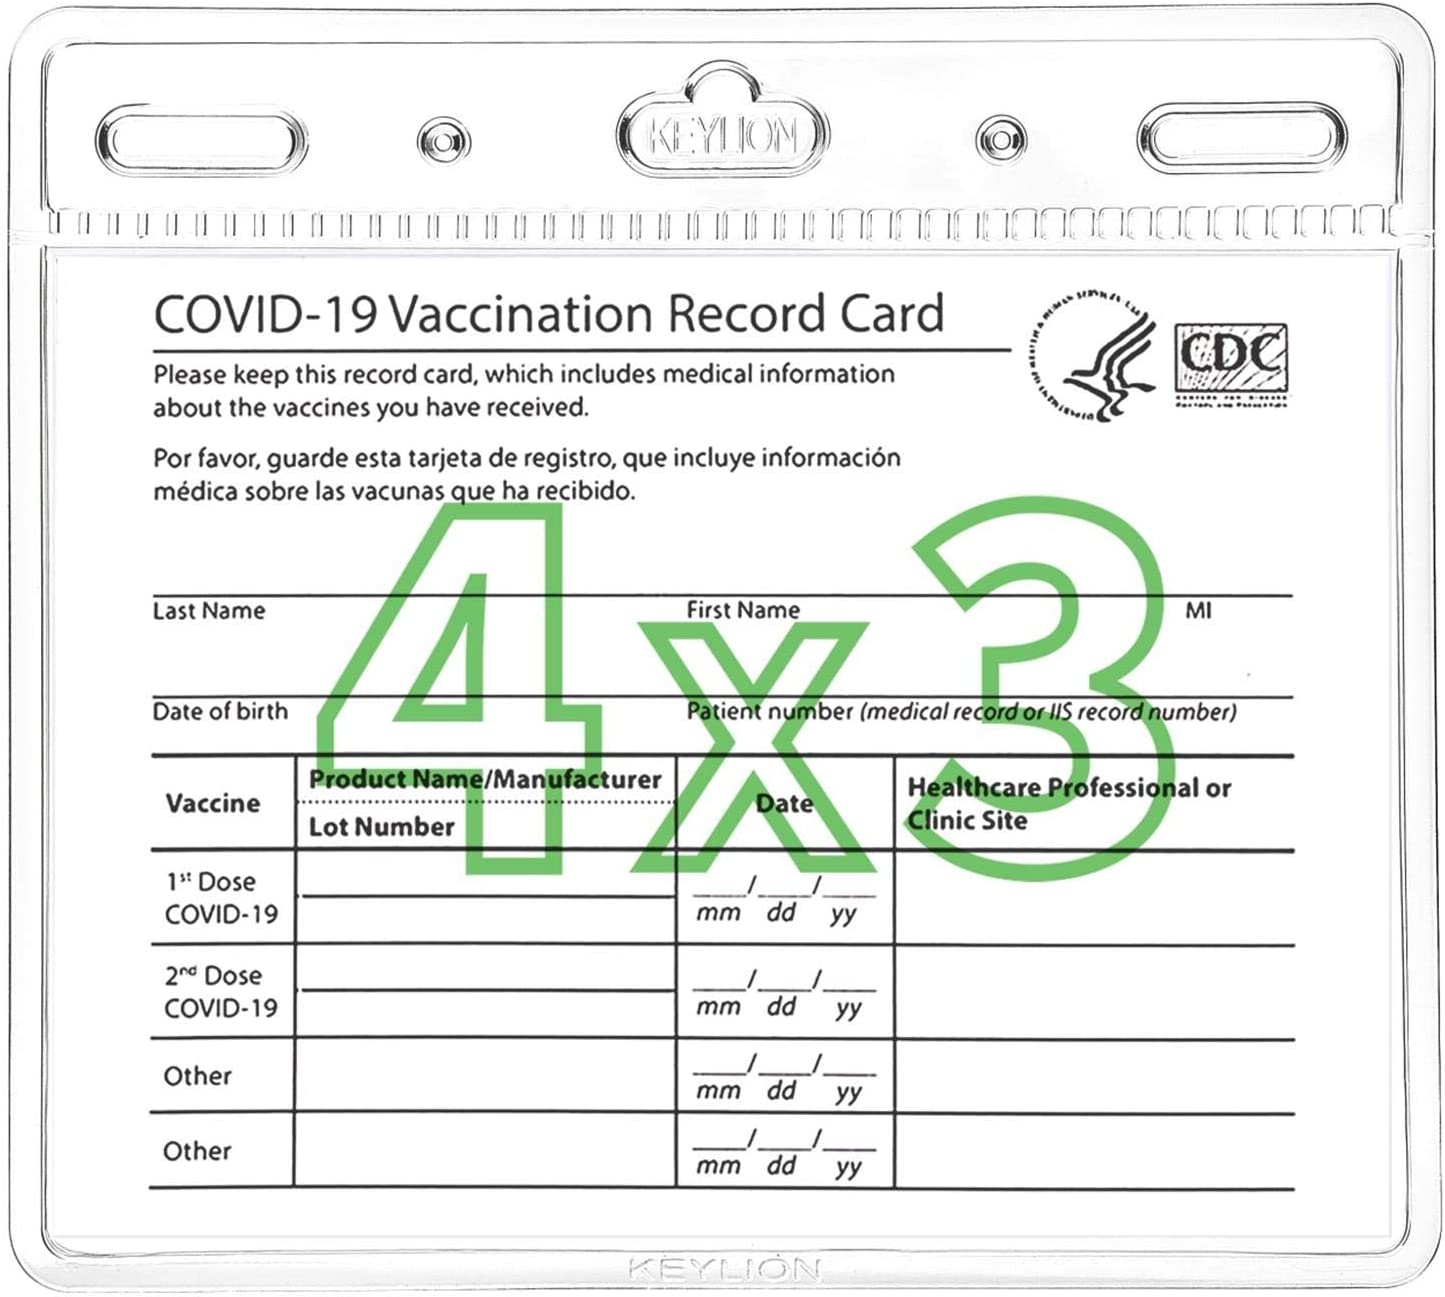 KEYLION 10 Pack Vaccination Card Protector Immunizat CDC Our shop most popular Deluxe in 4x3